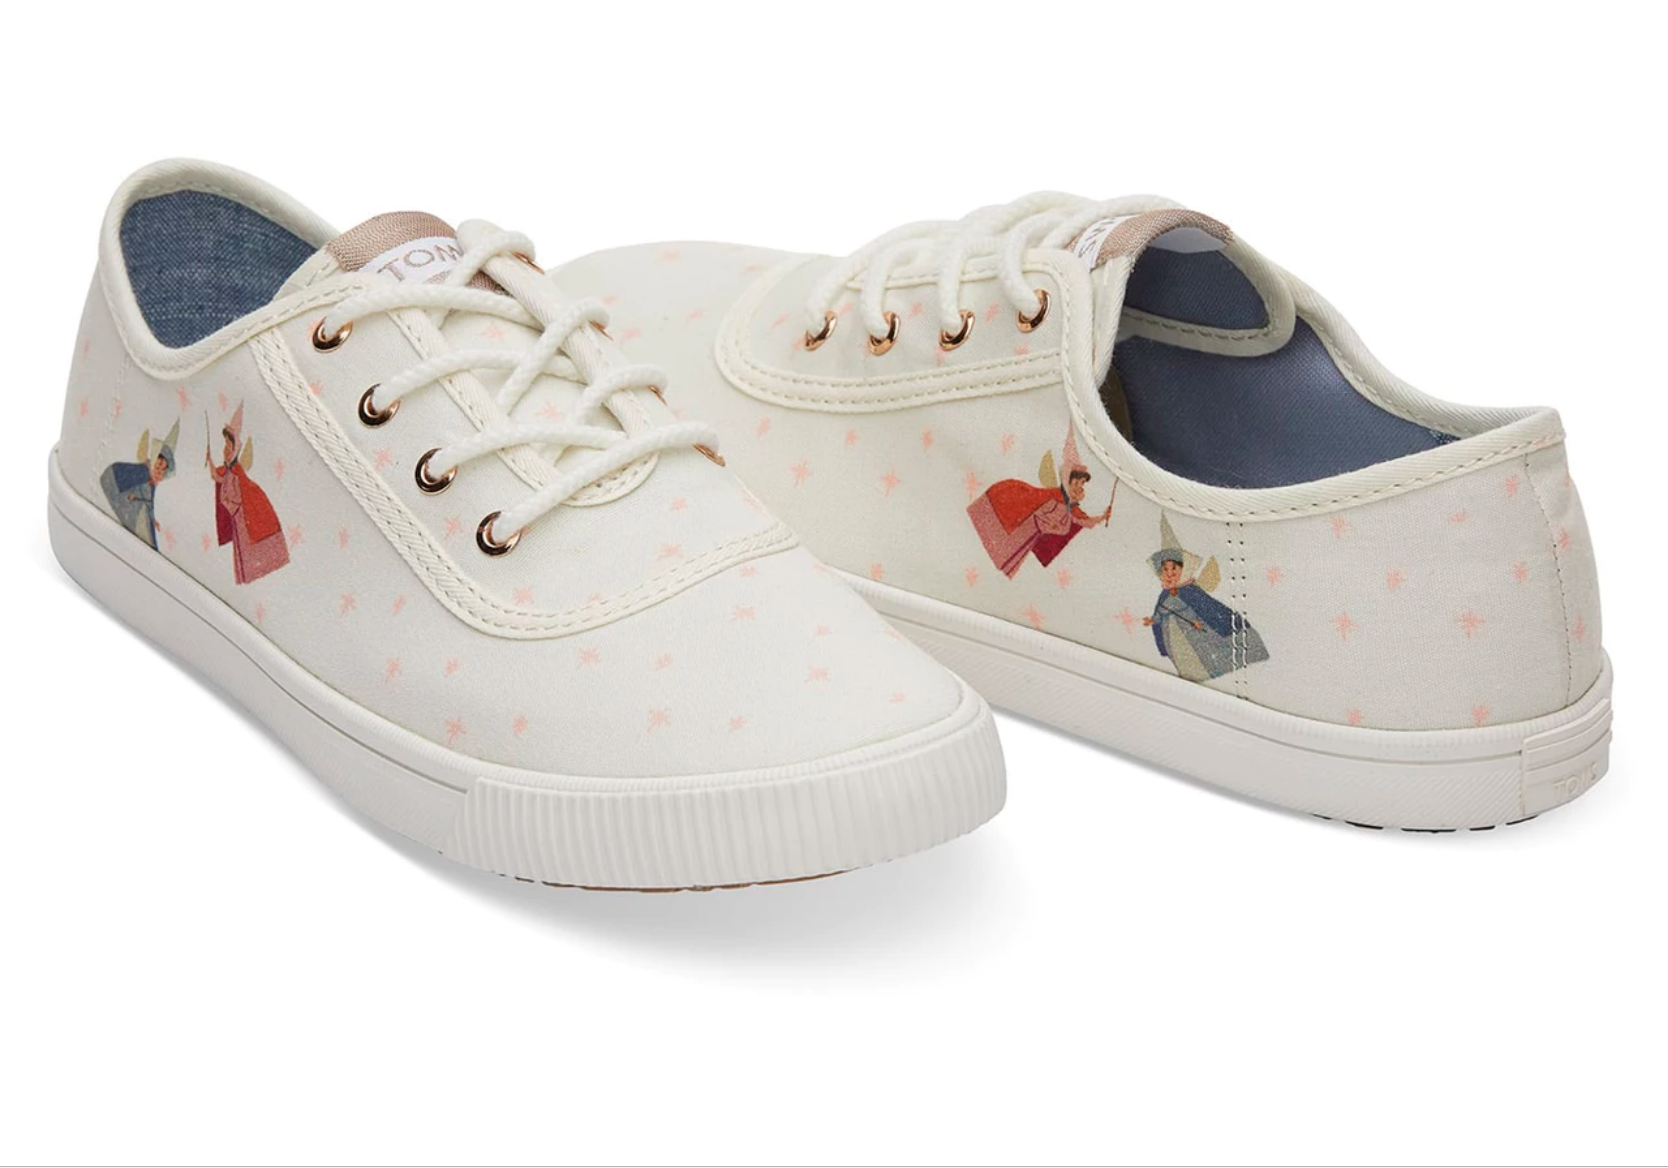 Sleeping Beauty Fairy Godmother Lace-Up Sneakers